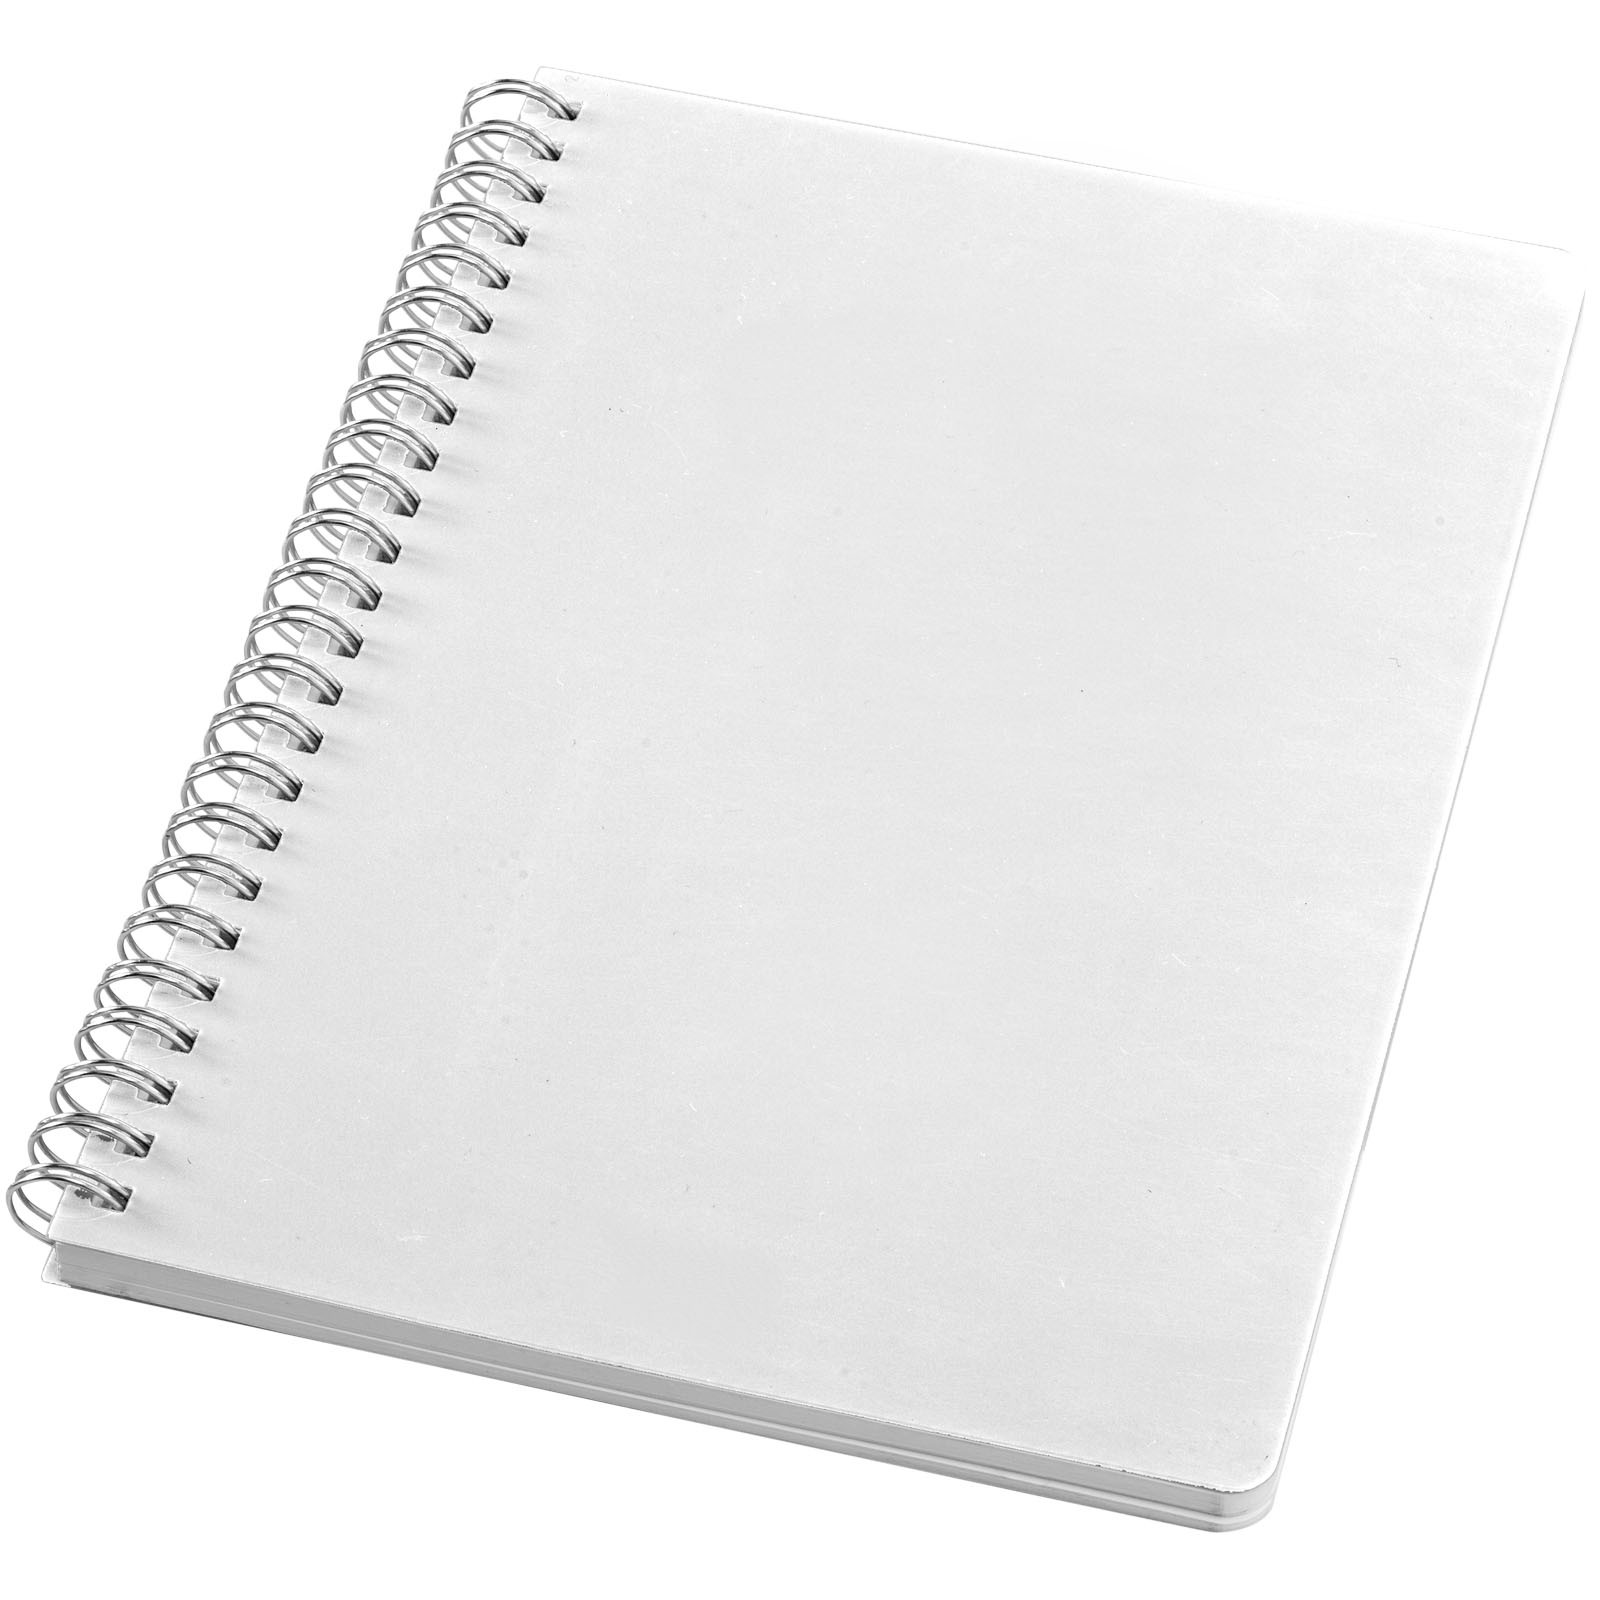 Happy-colours large spiral notebook - White